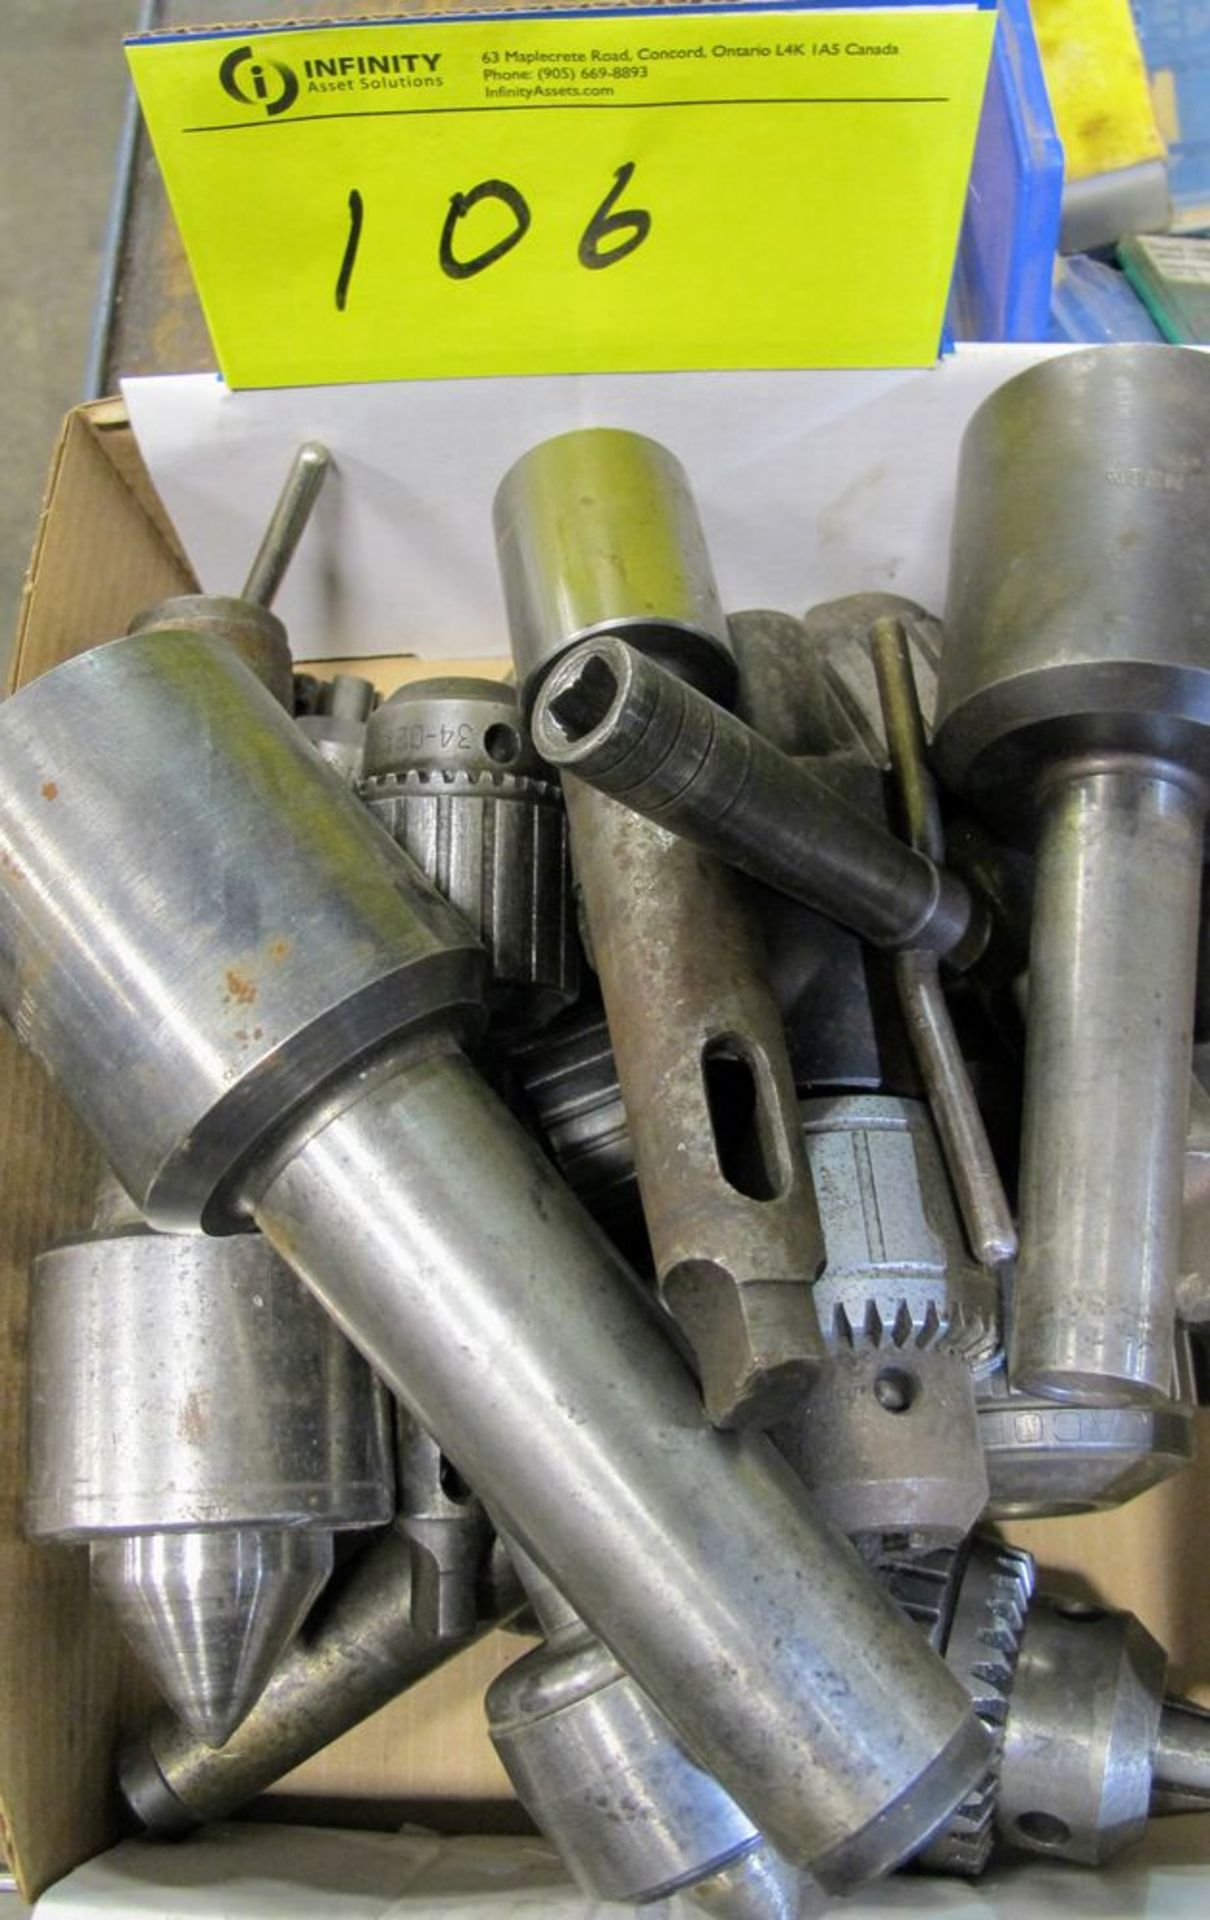 Lot 106 - LOT ASST. JACOBS CHUCKS, CARBIDE CUTTER HOLDERS, CARBIDE CUTTING BITS, ETC.